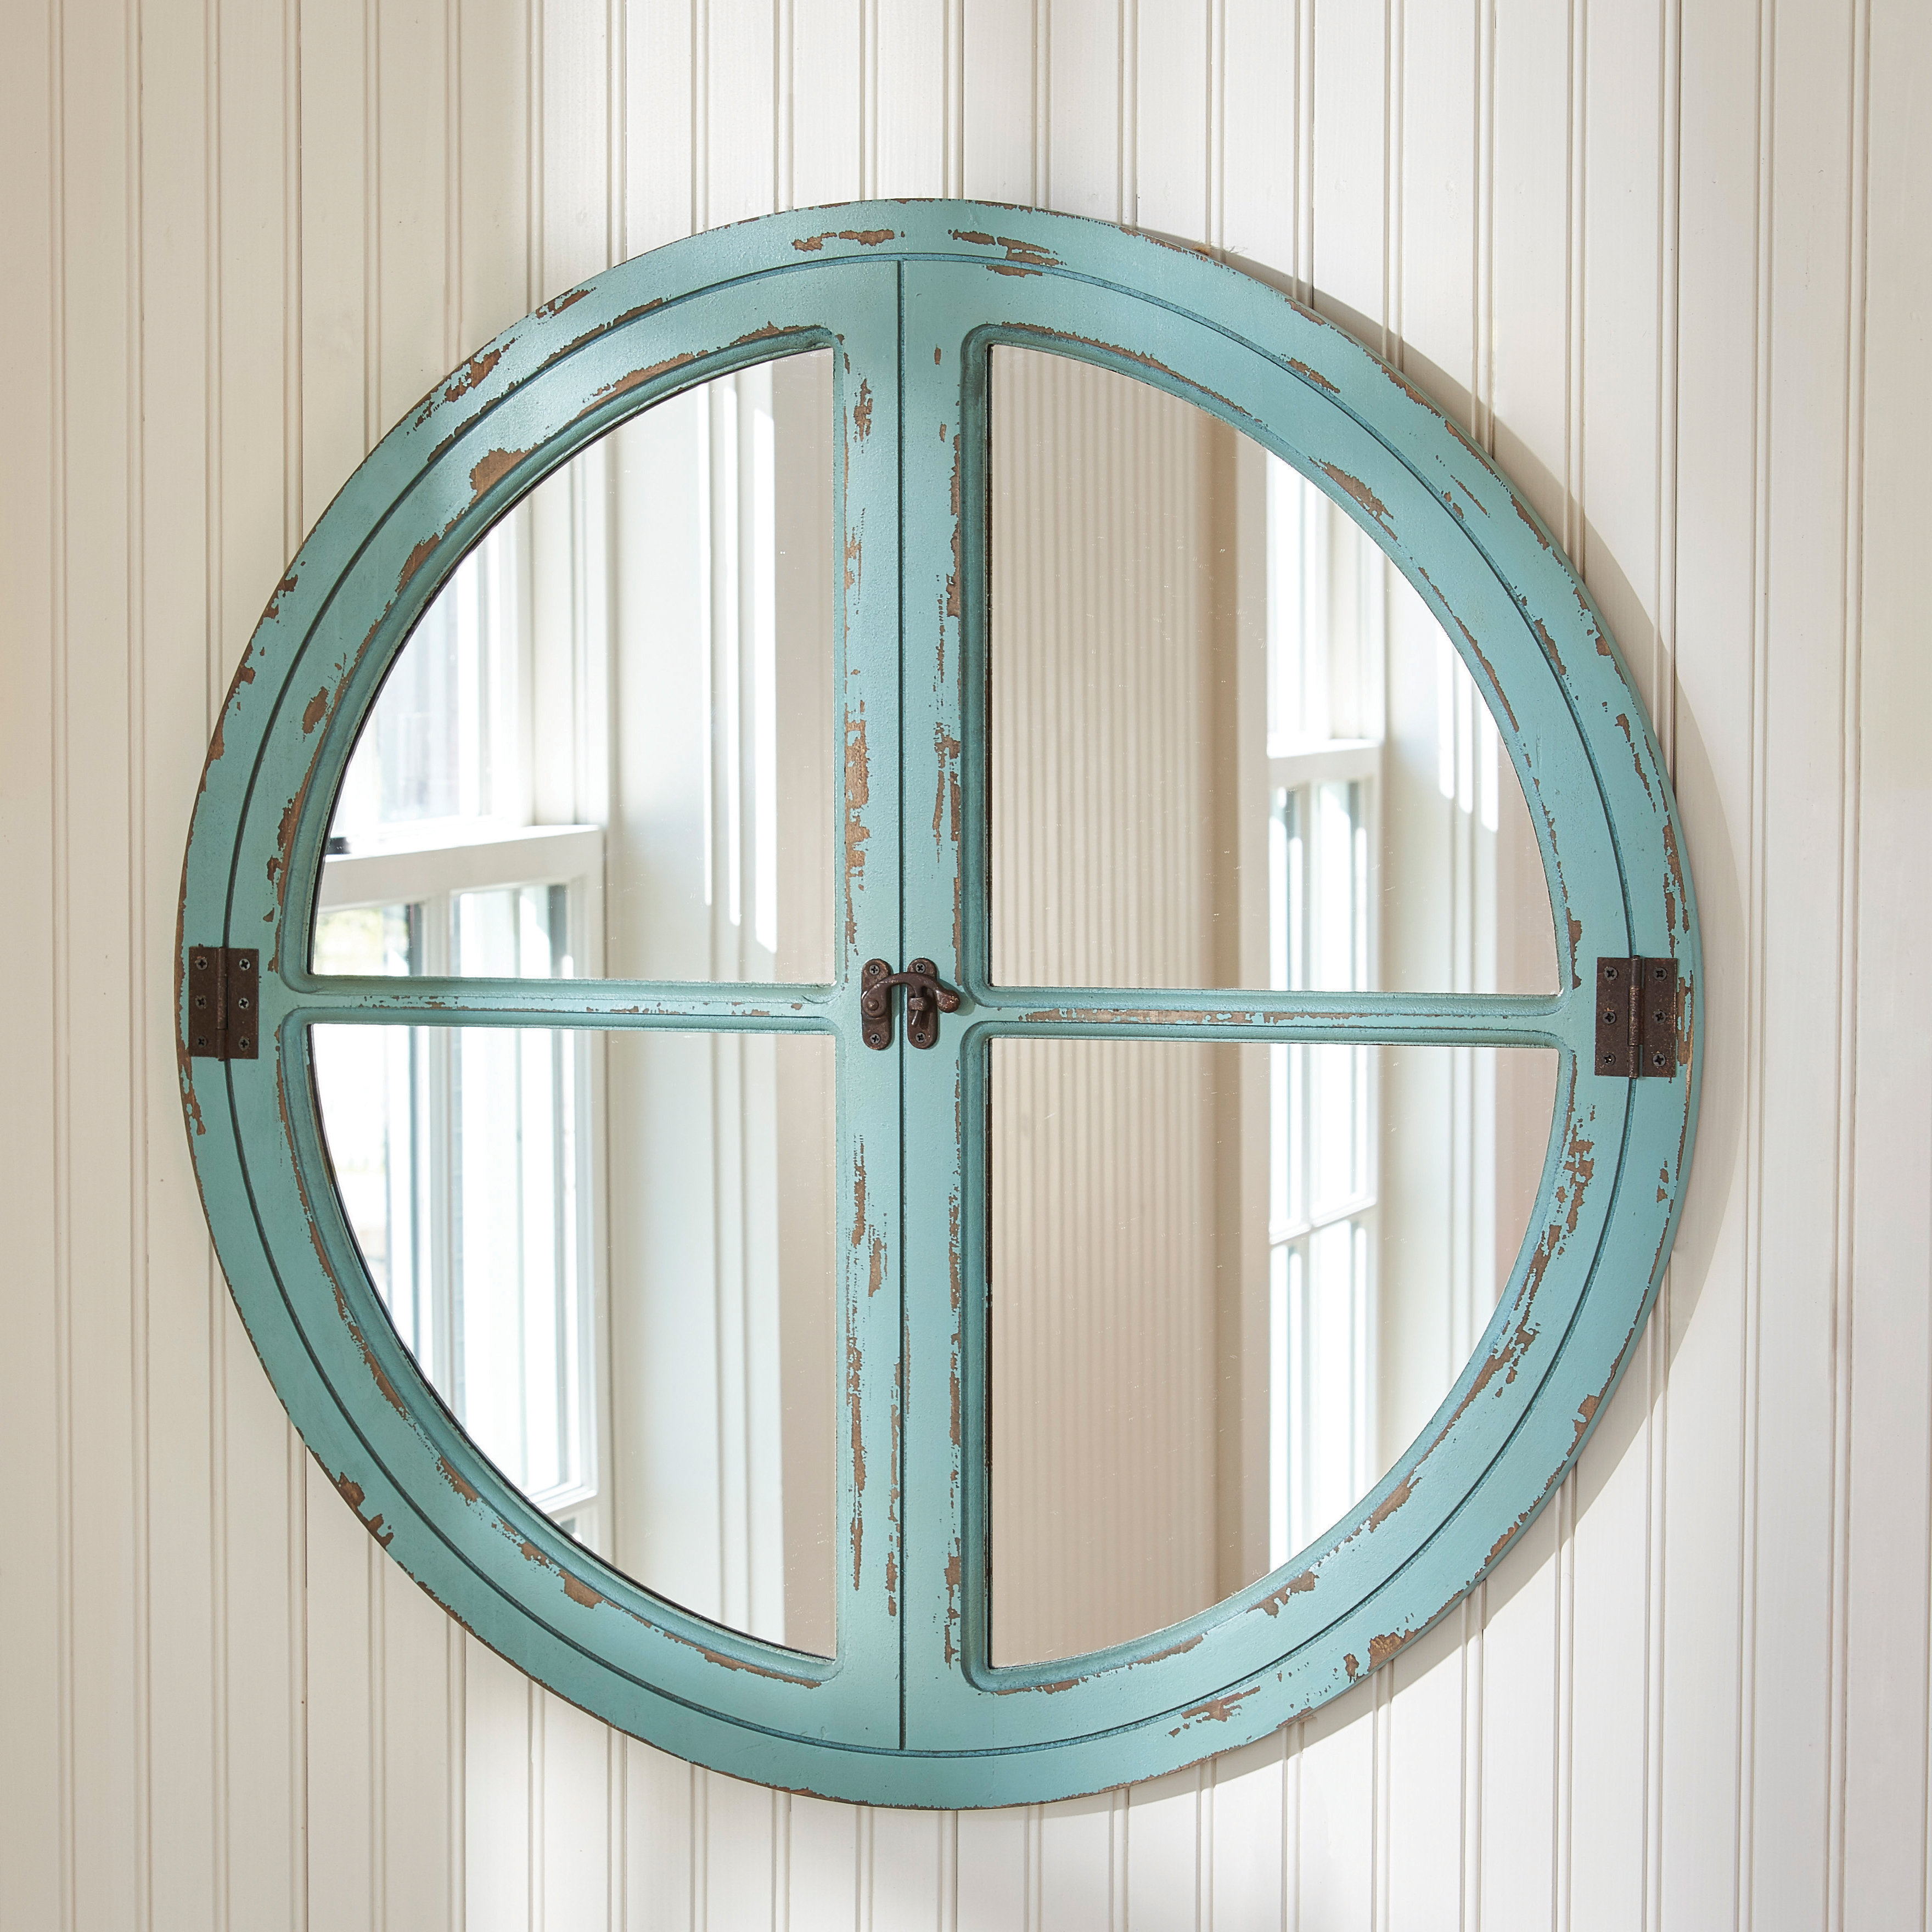 Parkdesignssplitp Round Window Sea Wall Mirror & Reviews Within Faux Window Wood Wall Mirrors (View 14 of 30)